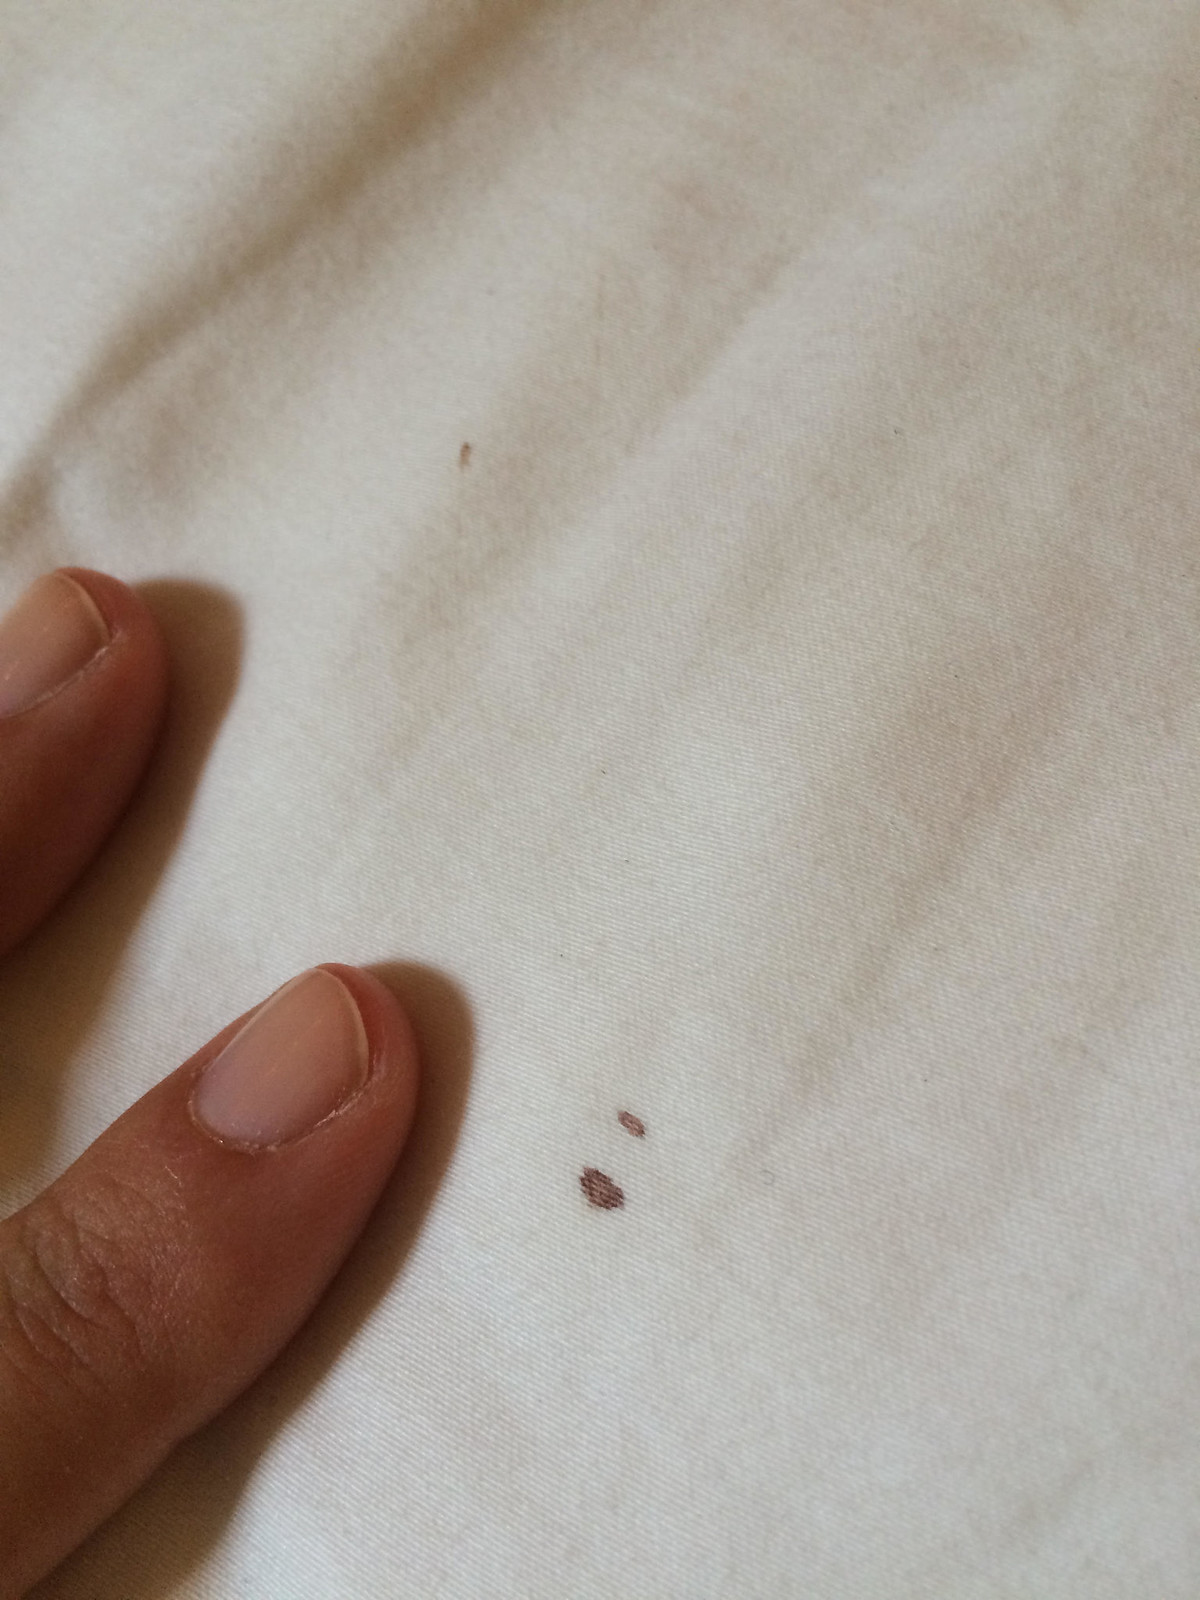 Bed bugs stains on sheets 25569 notefolio for Bed bugs on sheets